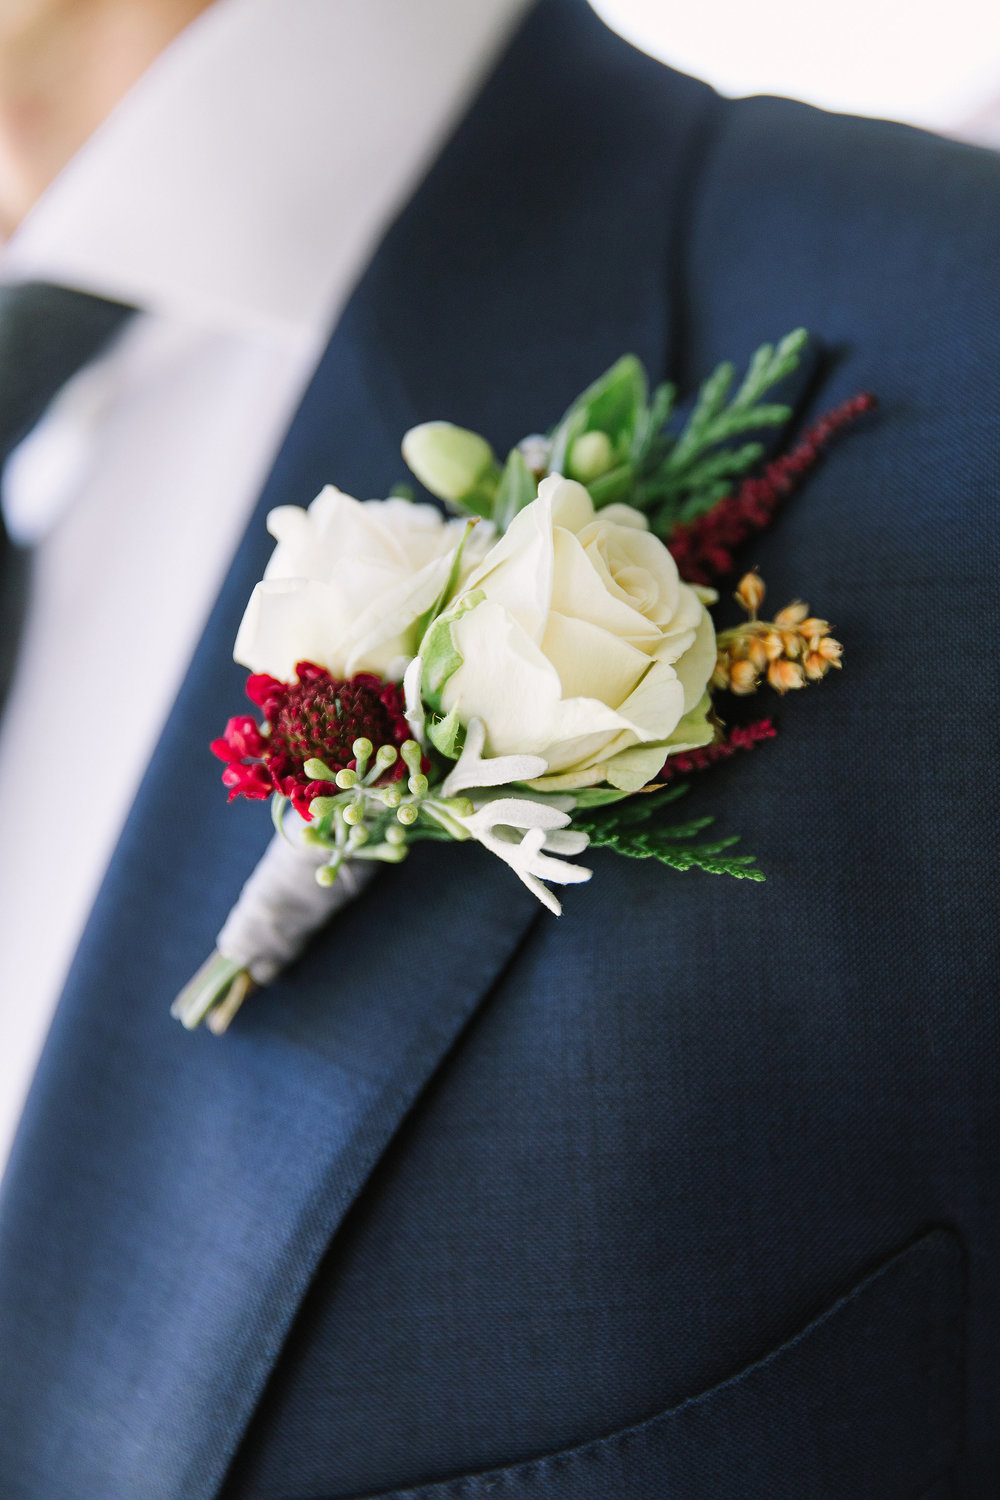 Gold, green, and burgundy boutonniere by Venn Floral photographed by The Edges in Petaluma, California at Olympia's Valley Estate.